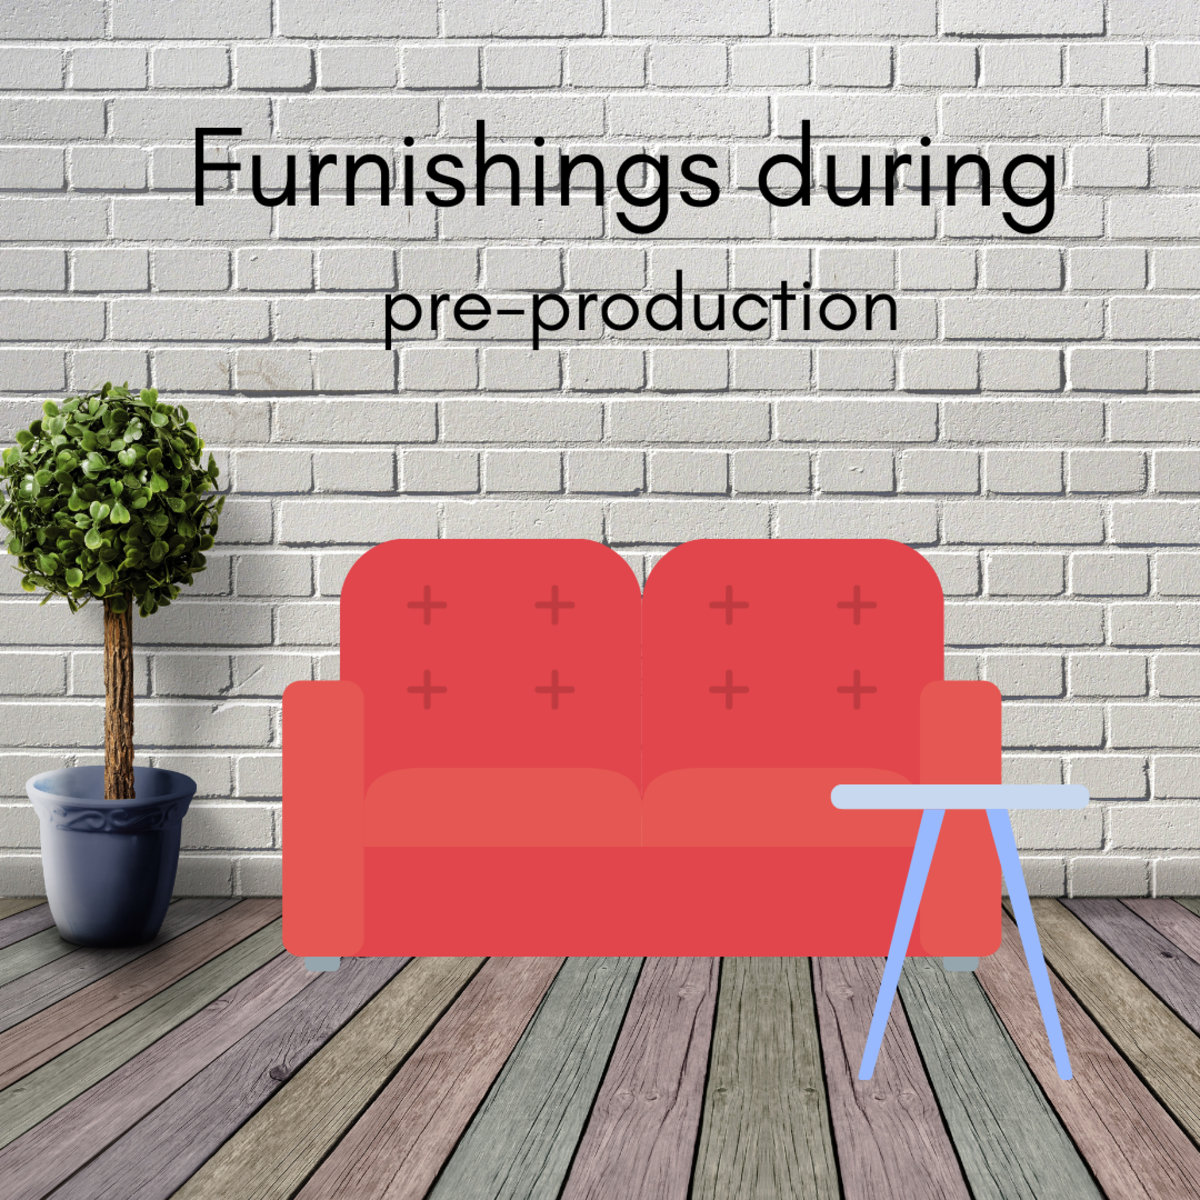 Picture of furnishings in a pre-production set up